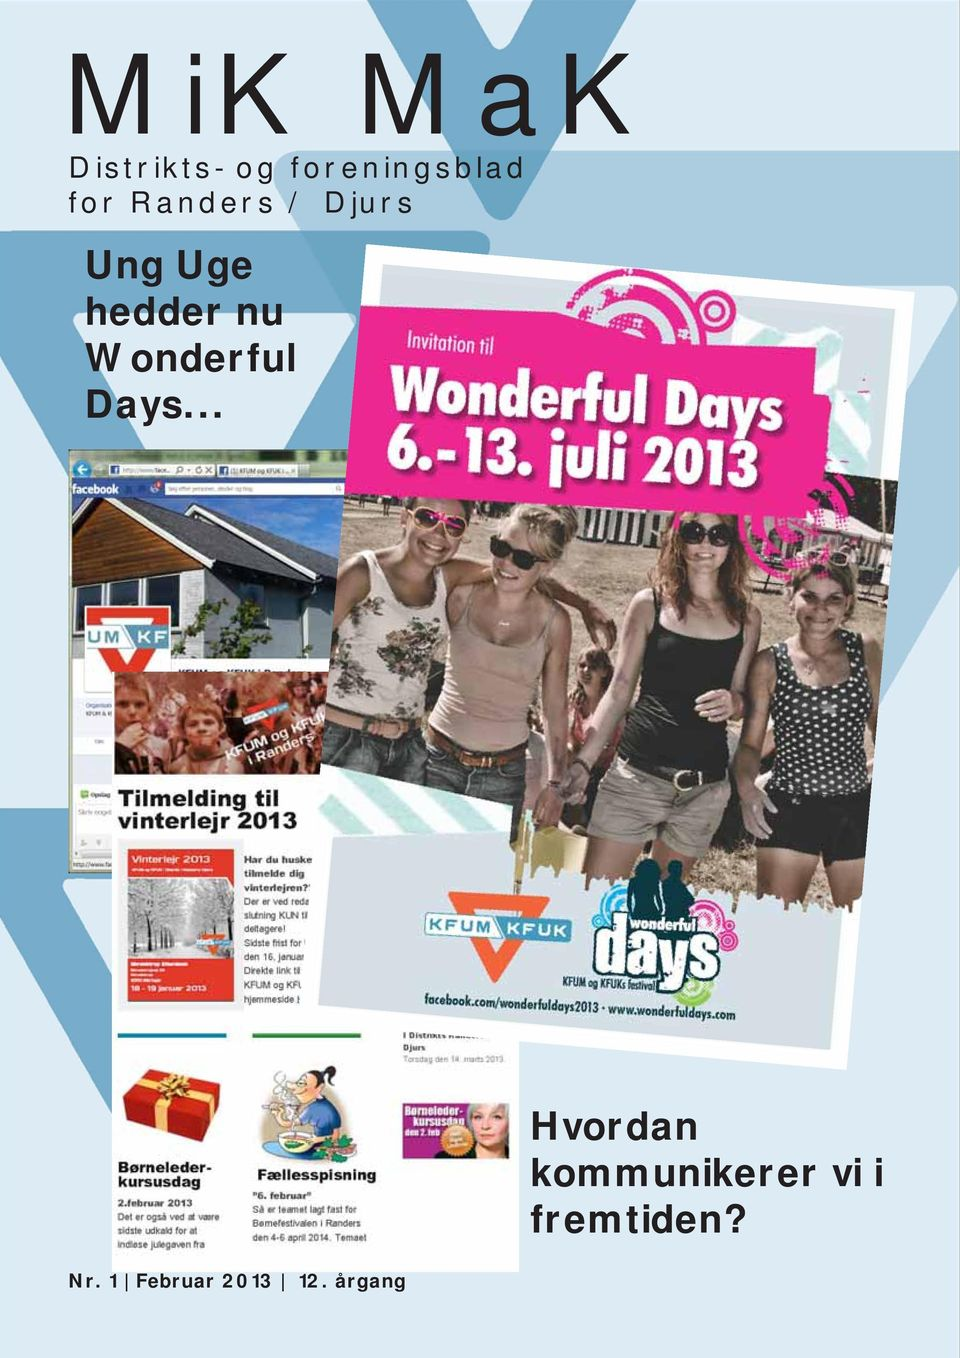 Wonderful Days... Nr. 1 Februar 2013 12.